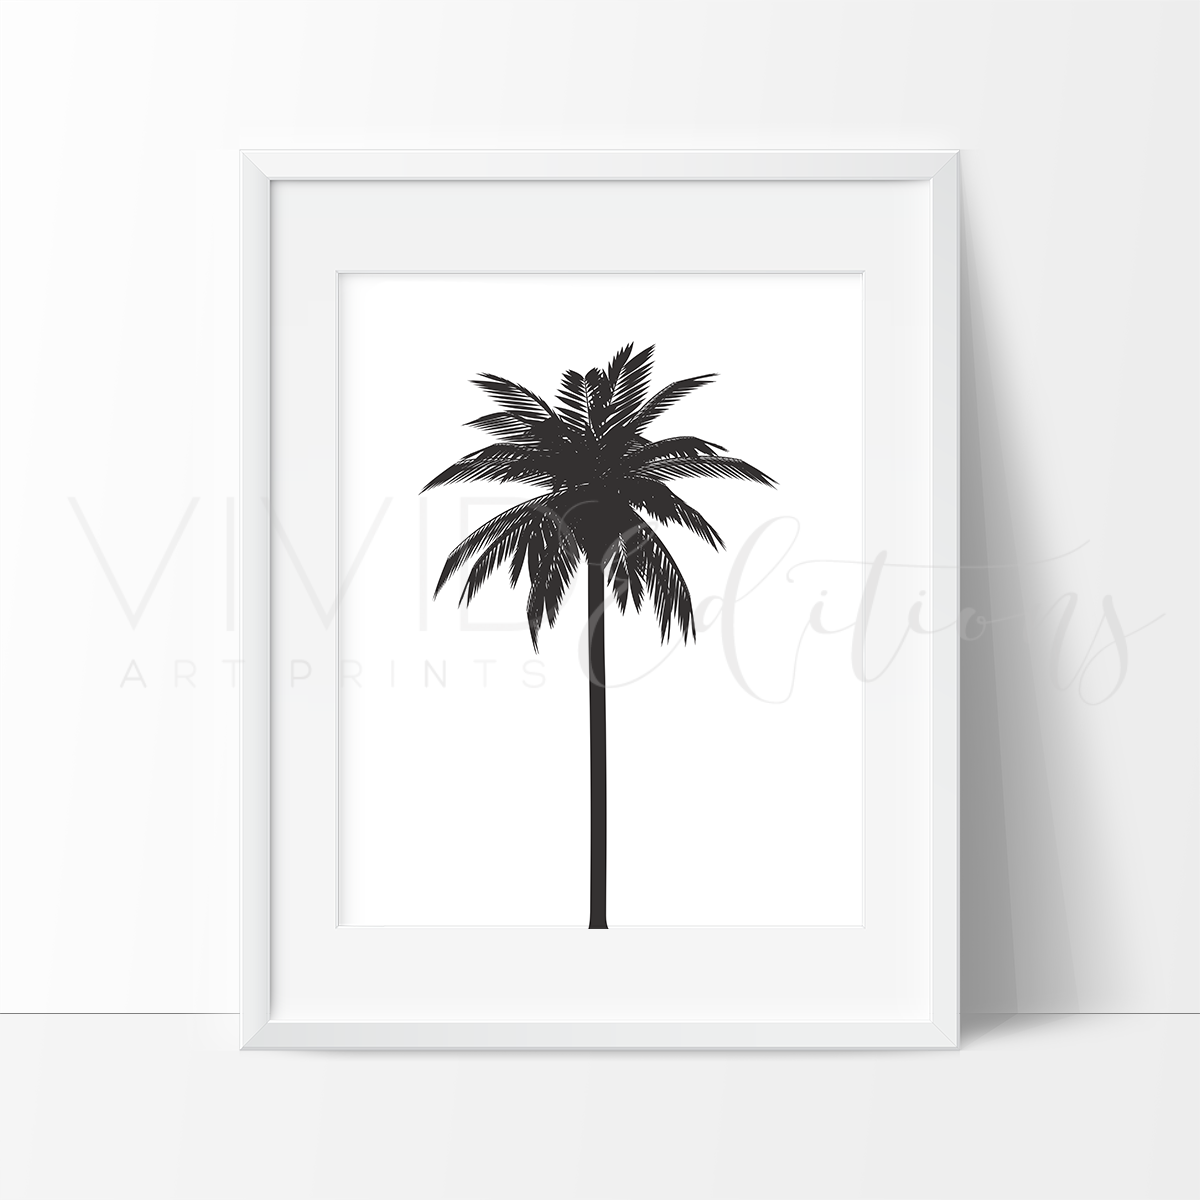 Monochrome Black And White Palm Tree Nursery Art Print Vivideditions